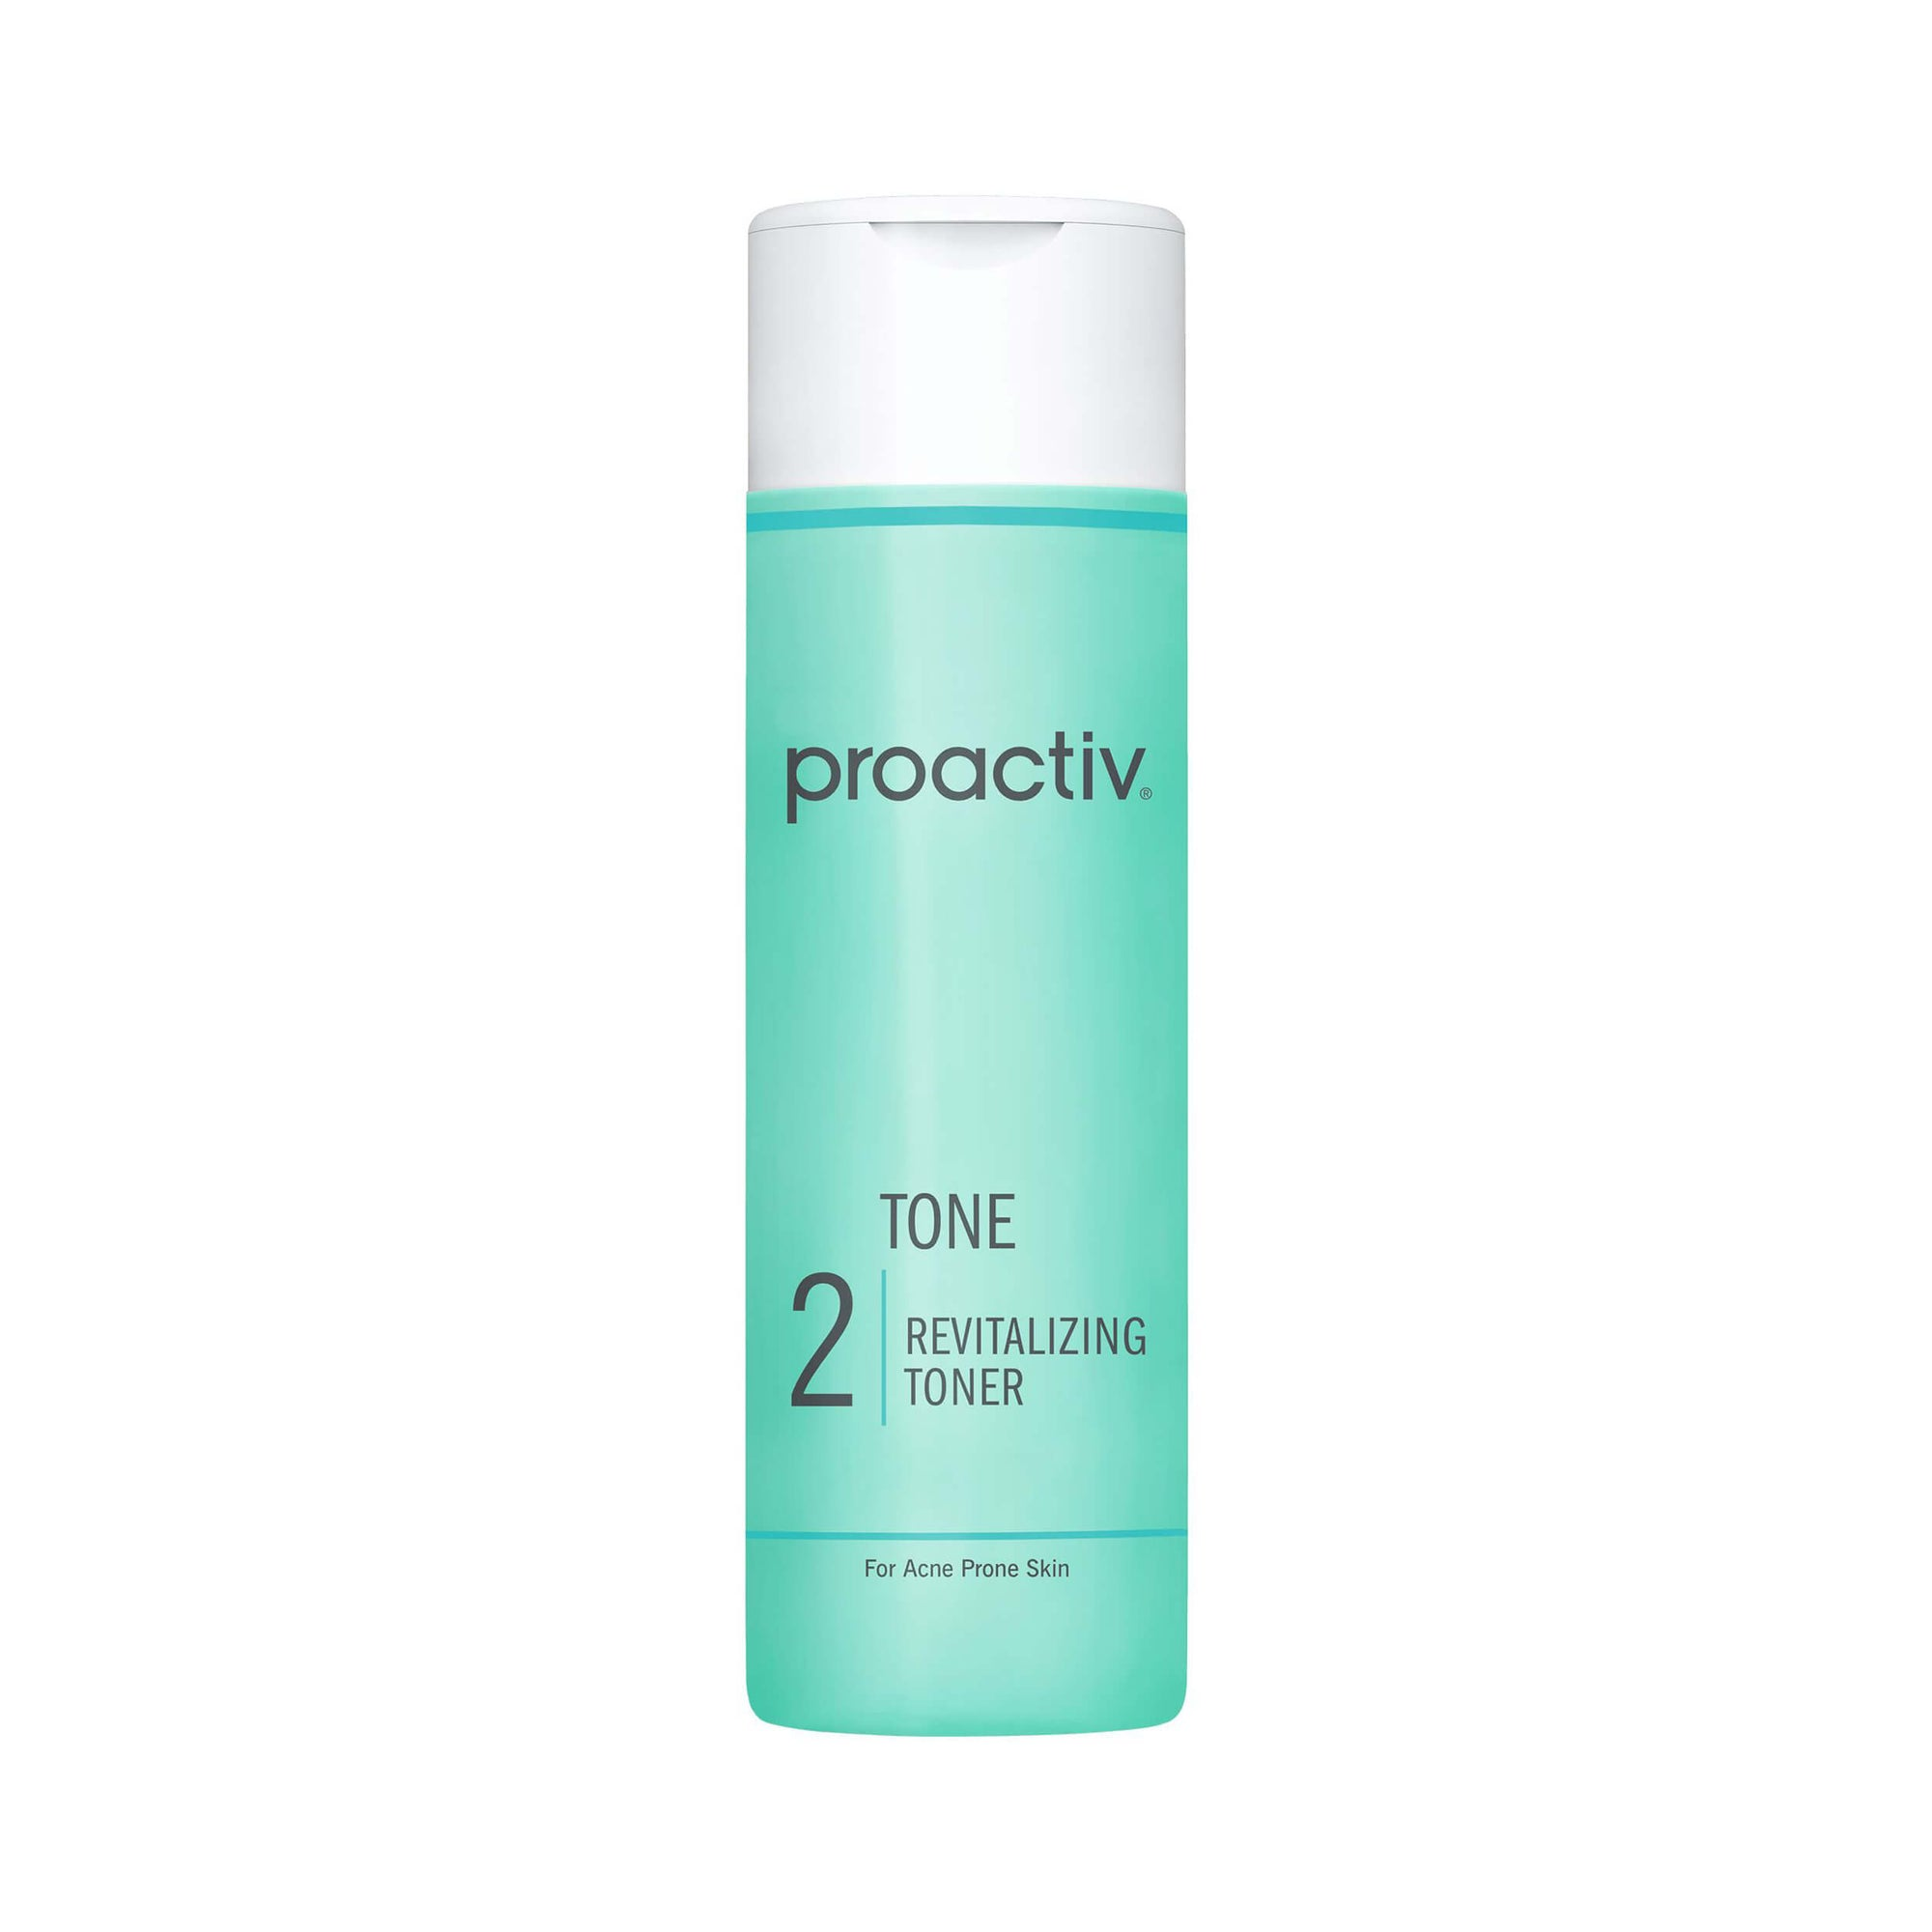 Proactiv Step 2 Tone 177 mL